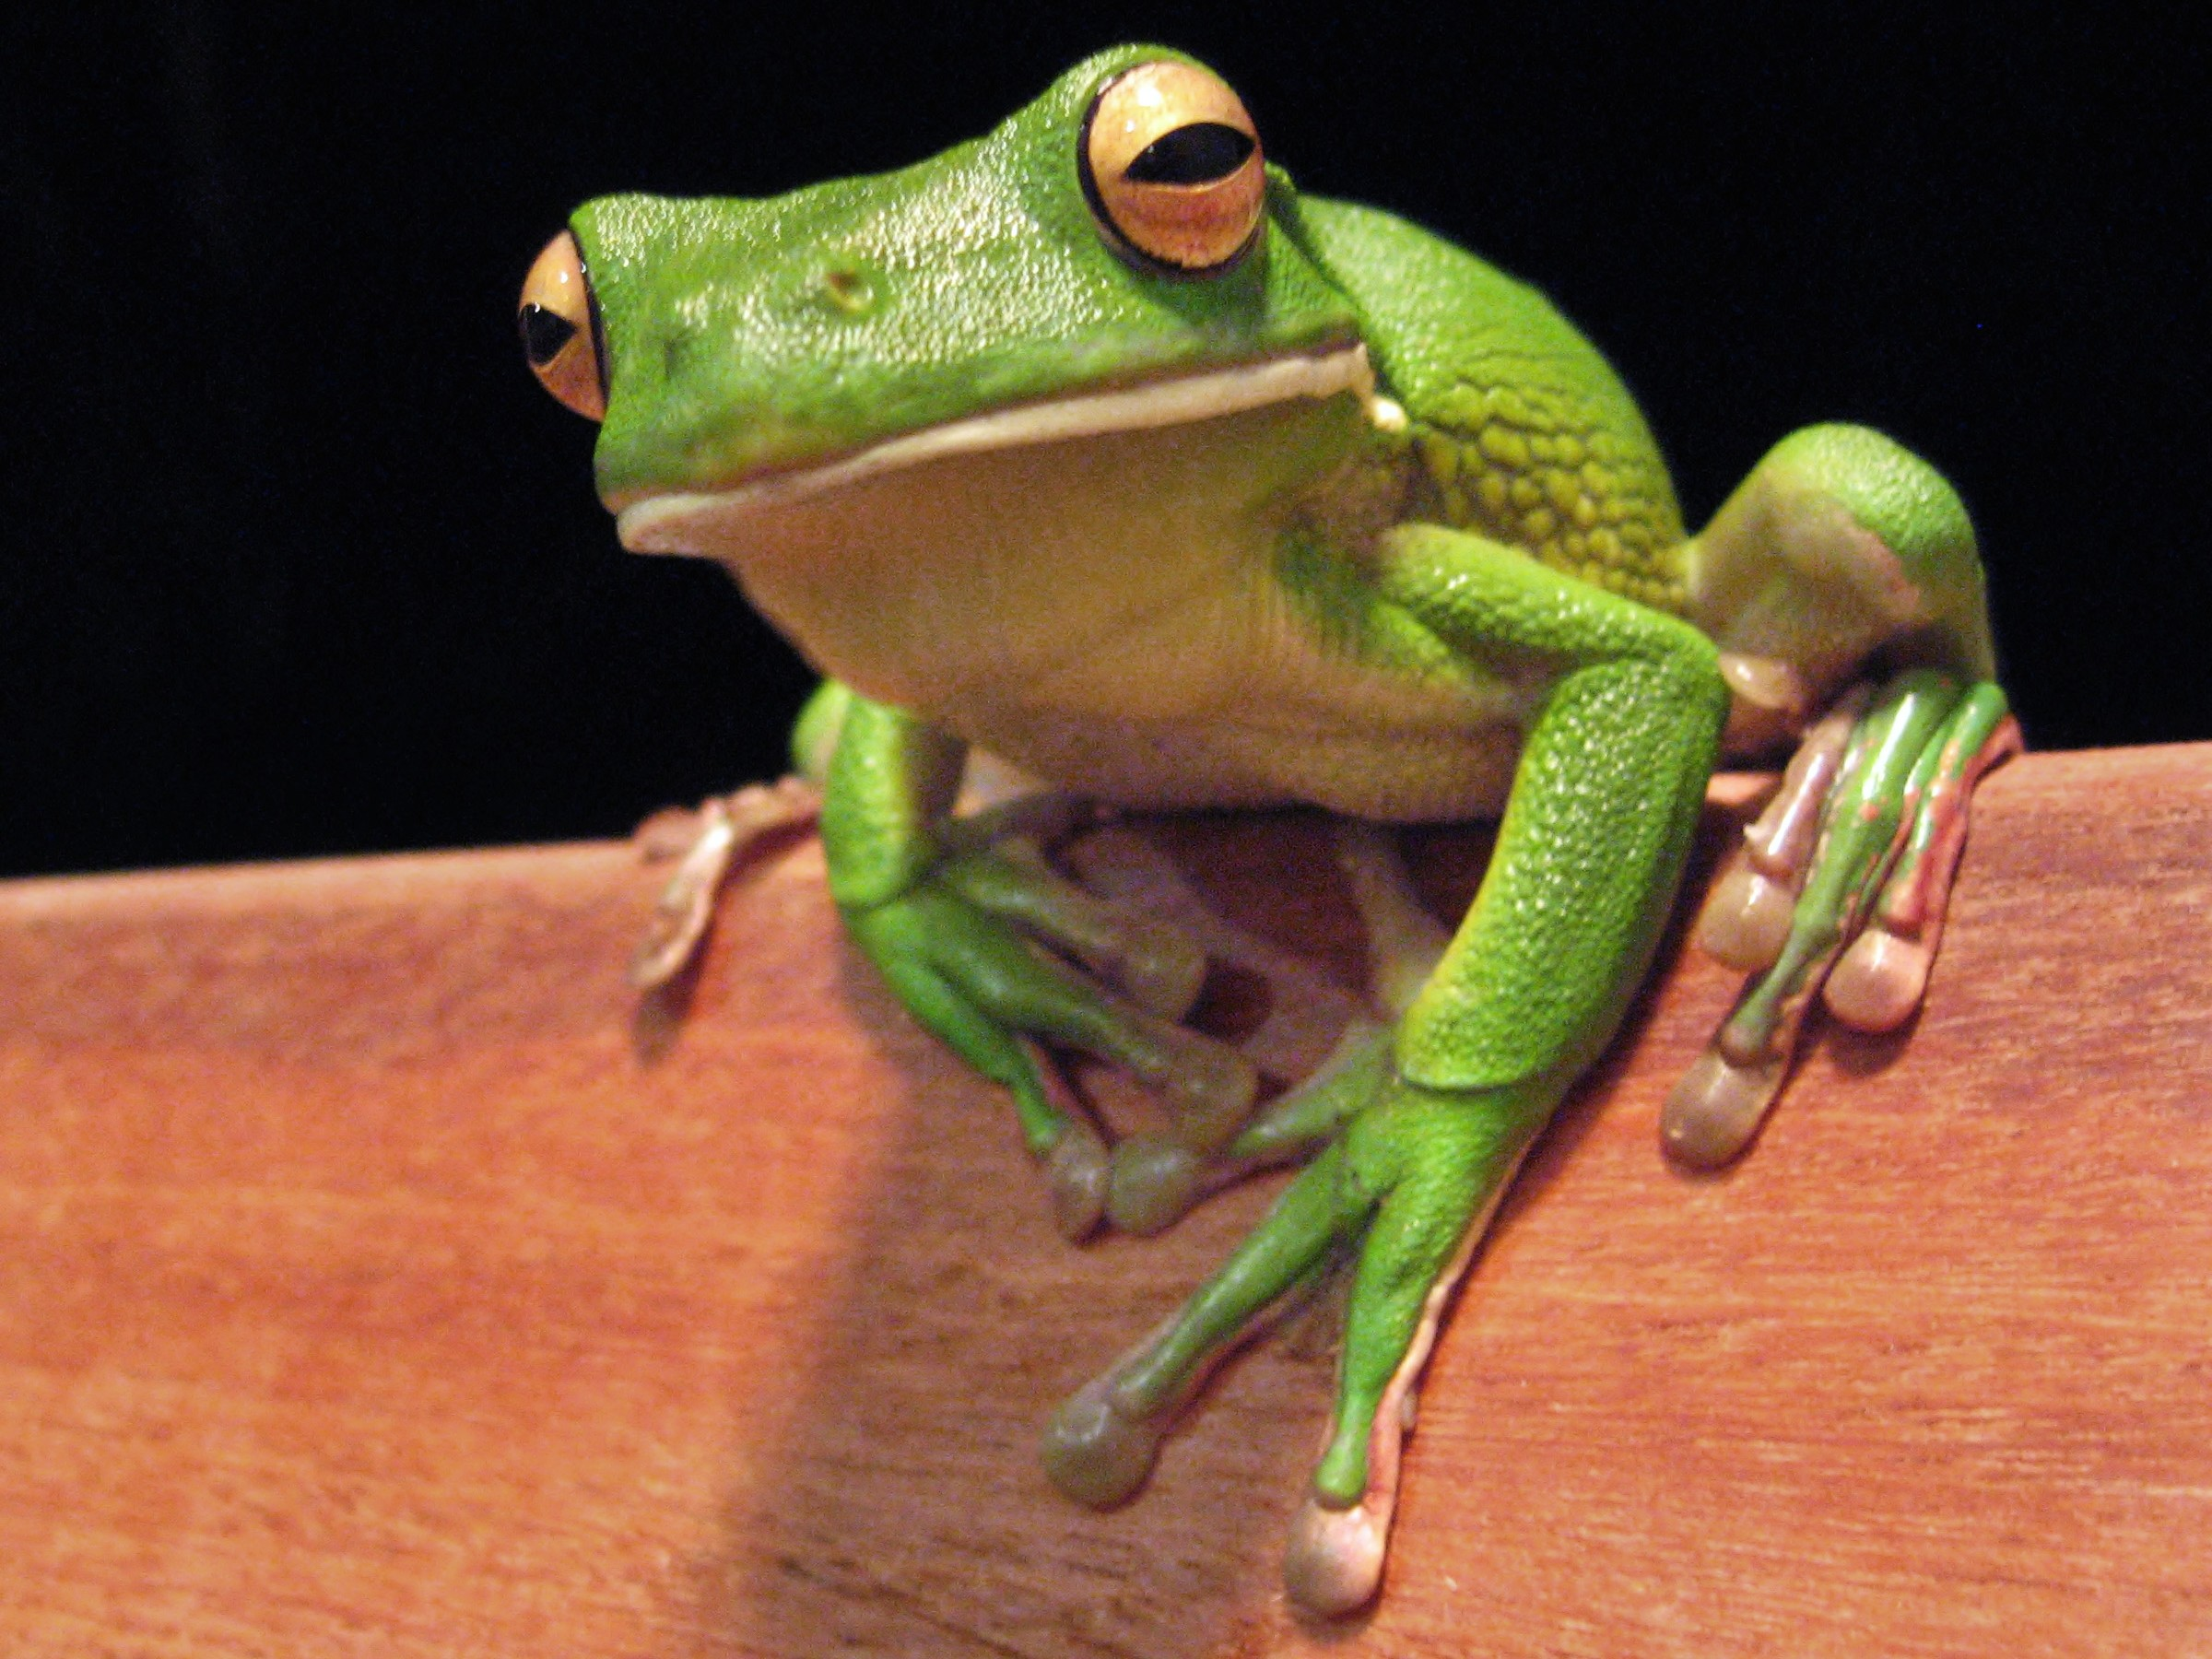 Res: 2400x1800, White-Lipped Tree Frog Wallpapers 5 - 2400 X 1800